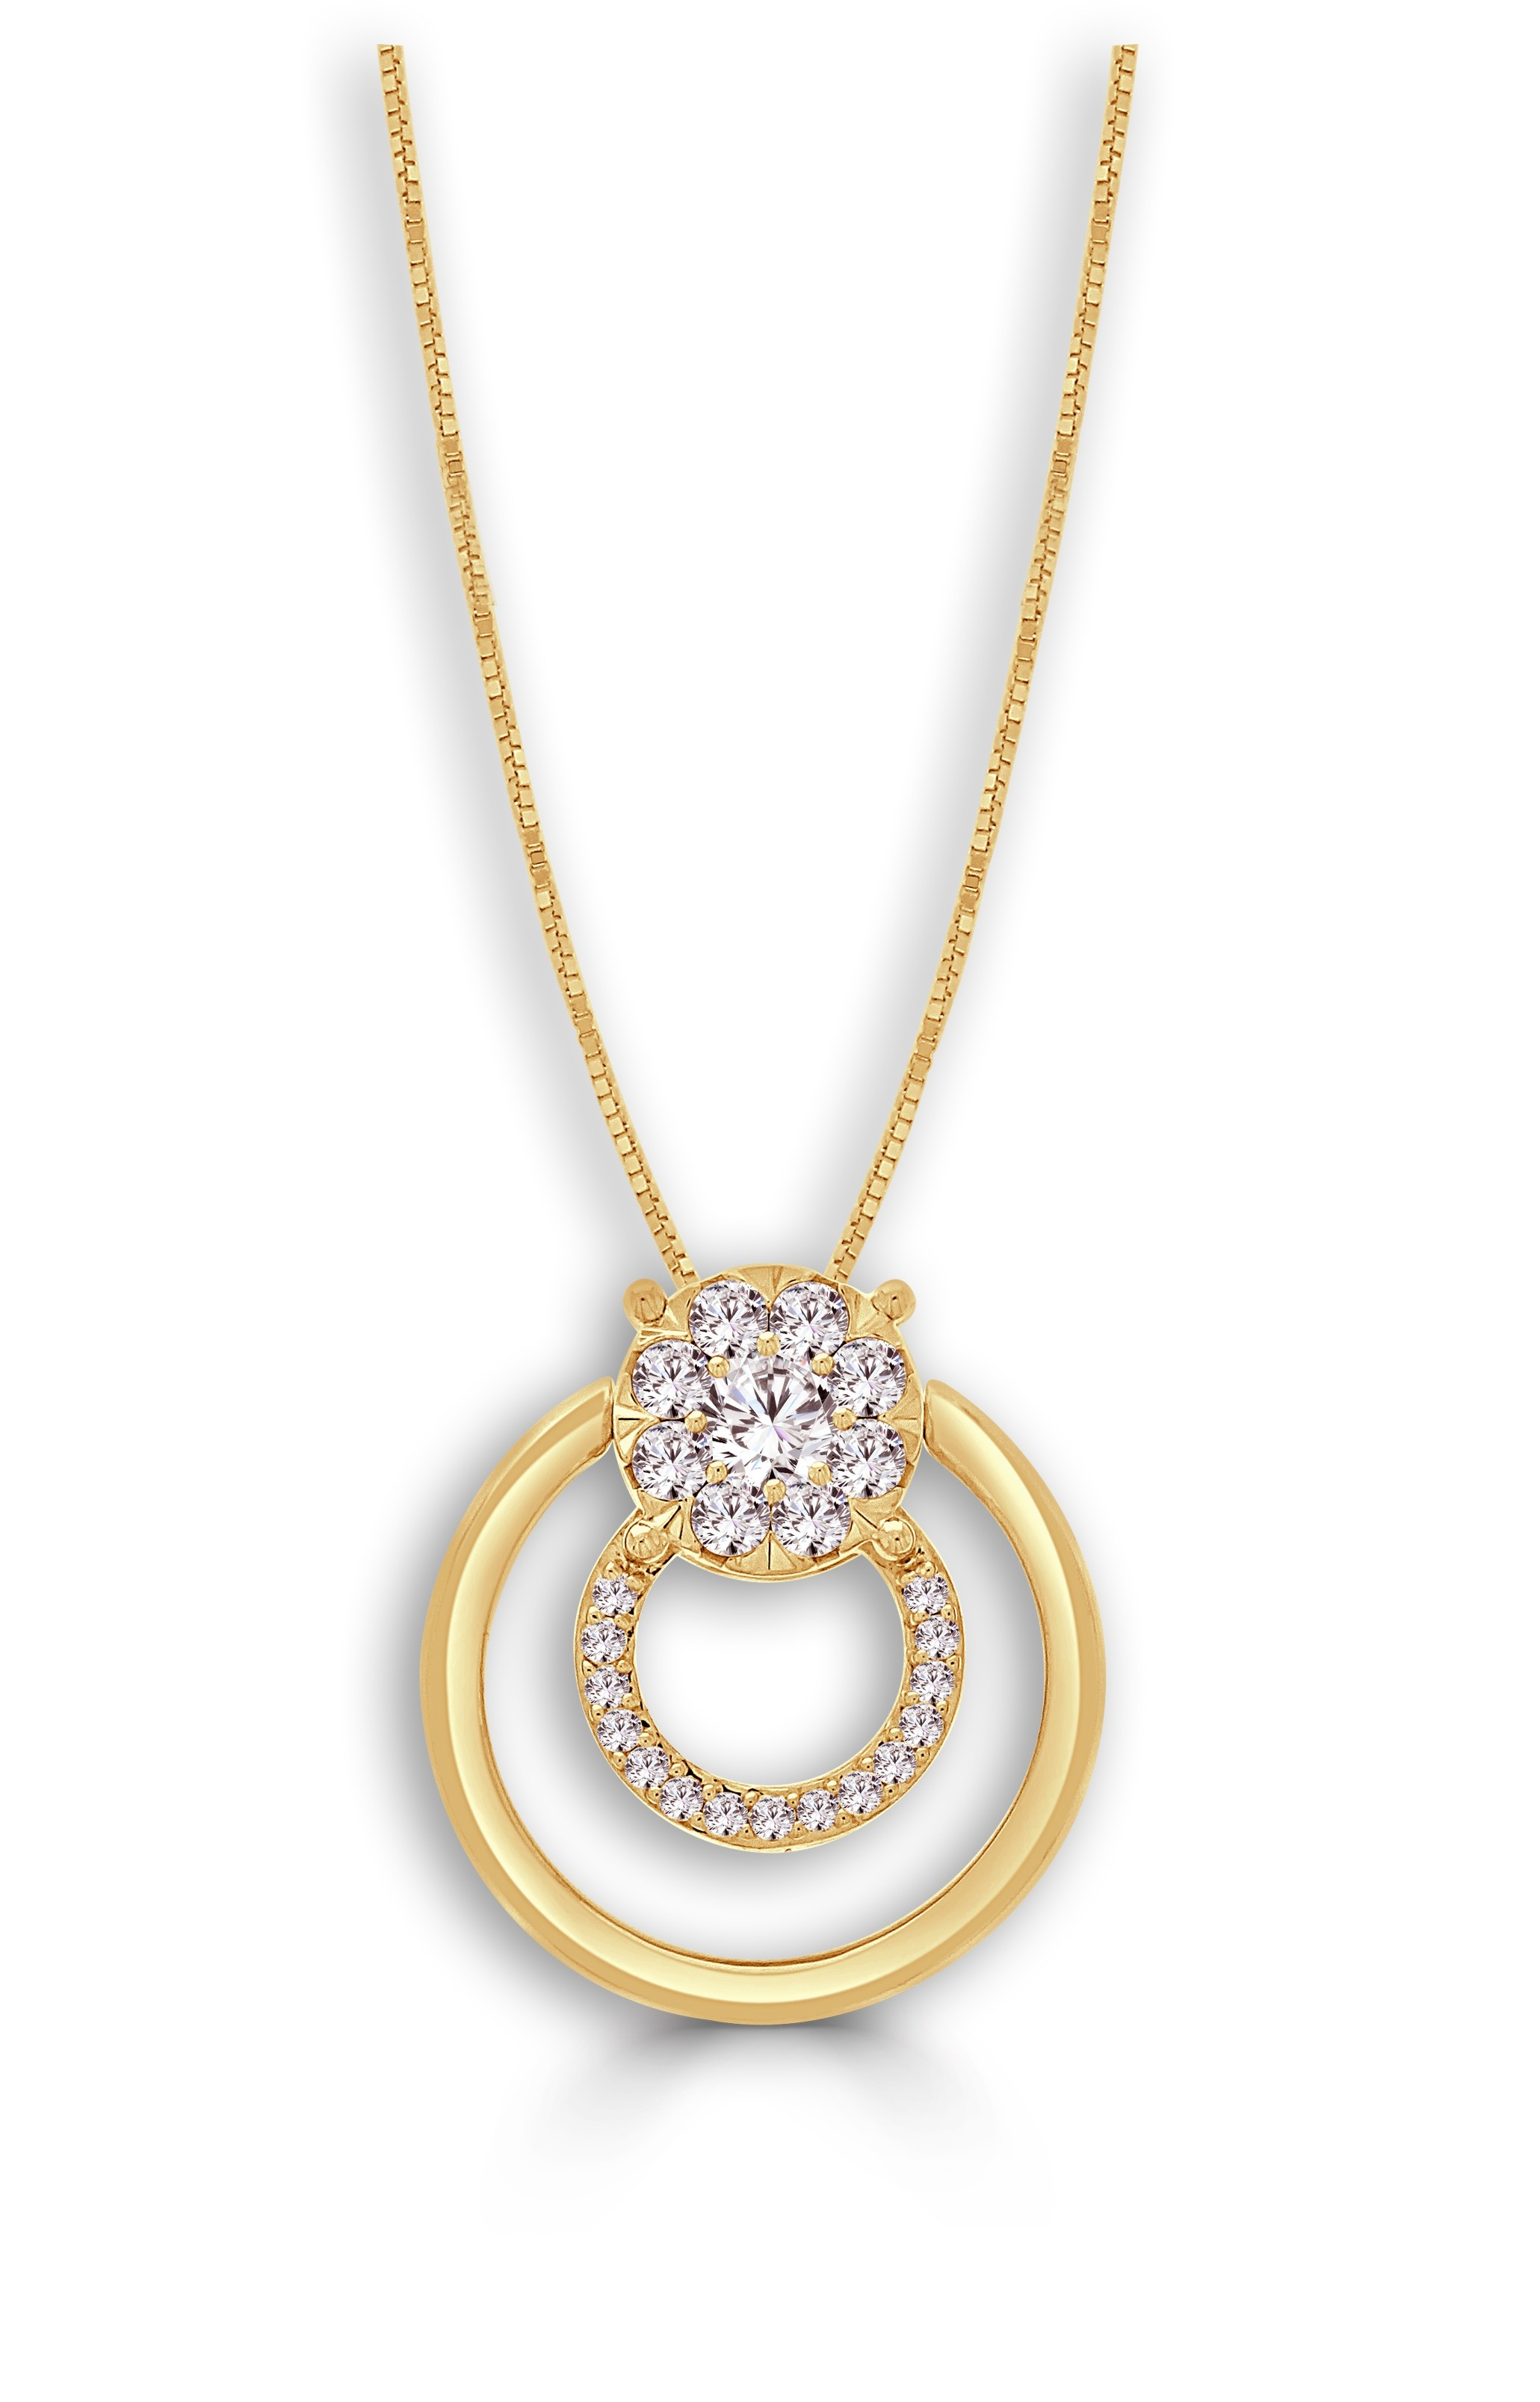 necklaces diamond bar yellow gold in love cosanuova necklace jewelry pendant